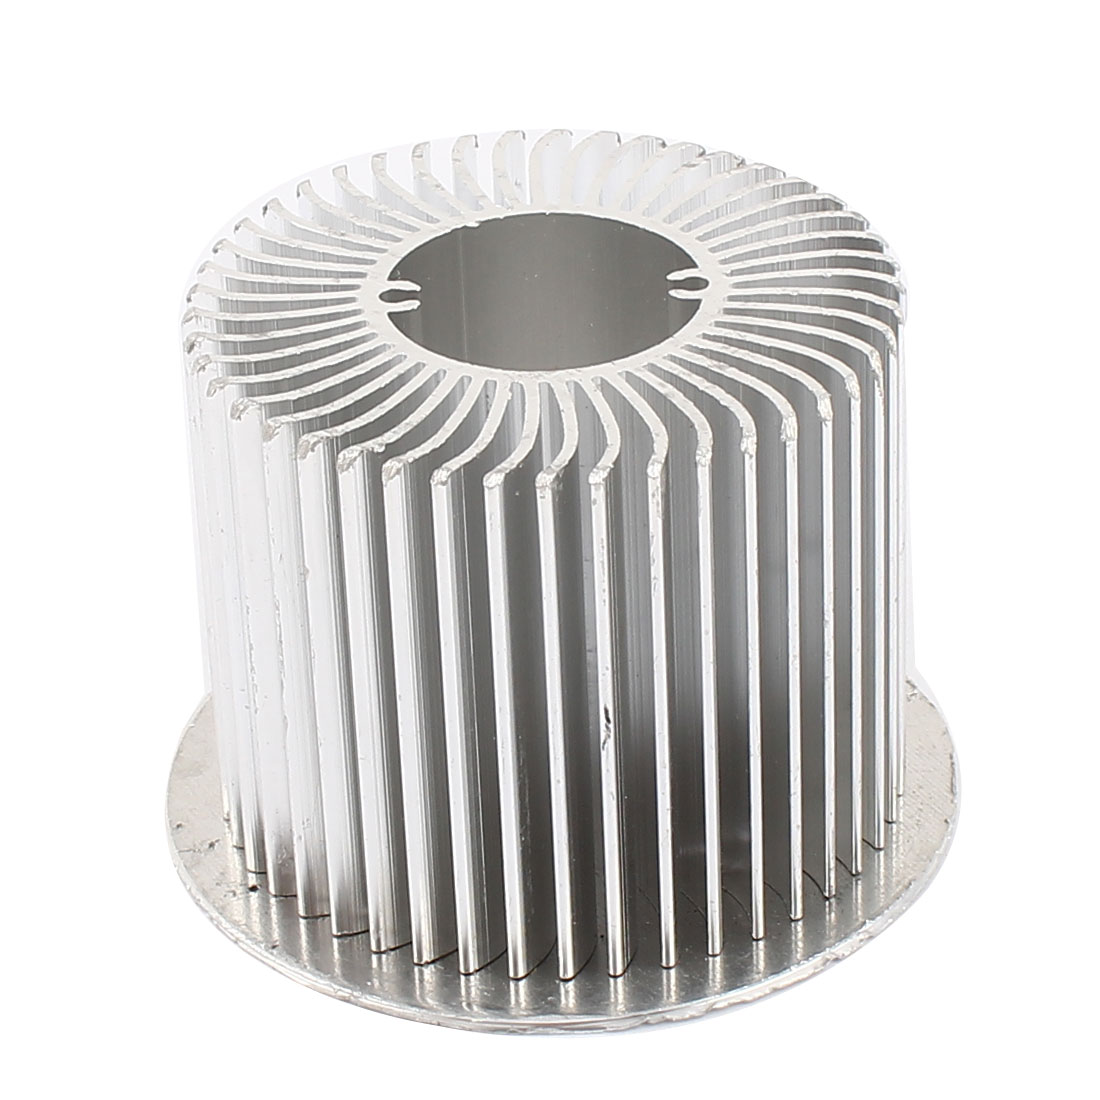 73mm x 50mm Cylinder 8W High Power LED Heatsink Aluminium Cooling Fin